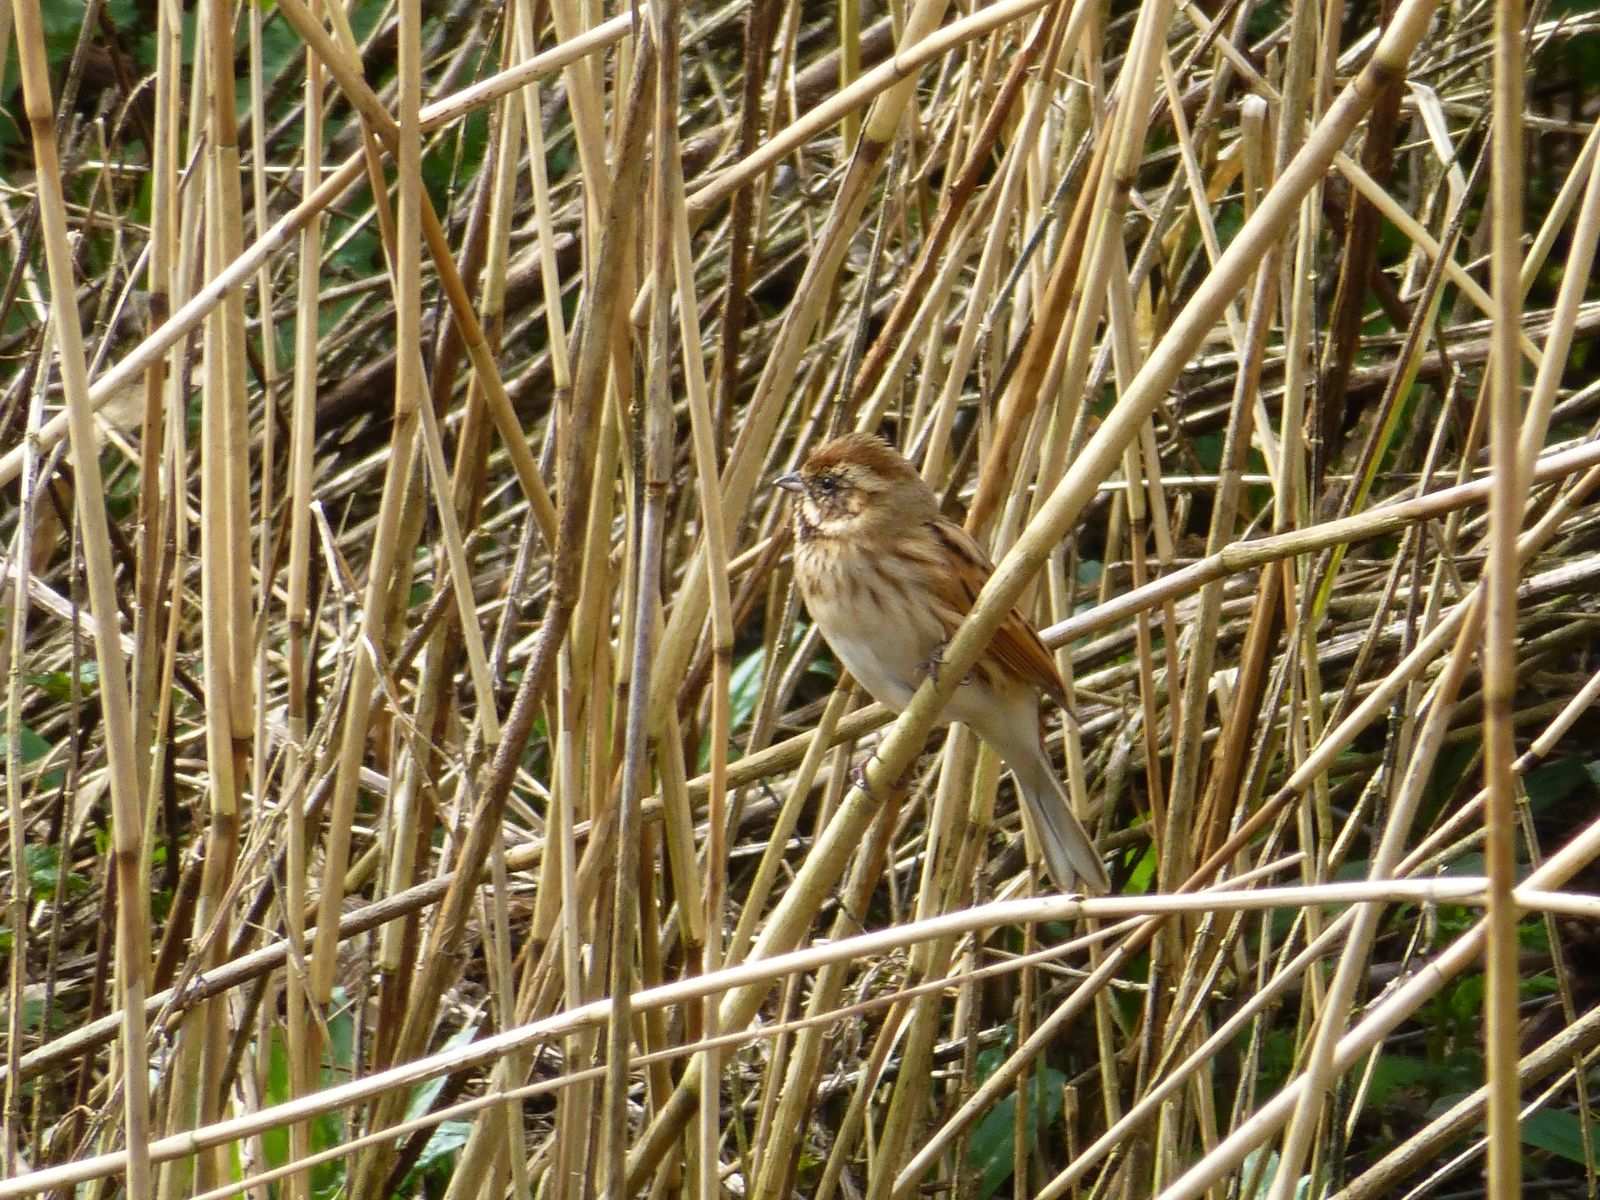 Female Reed Buntin